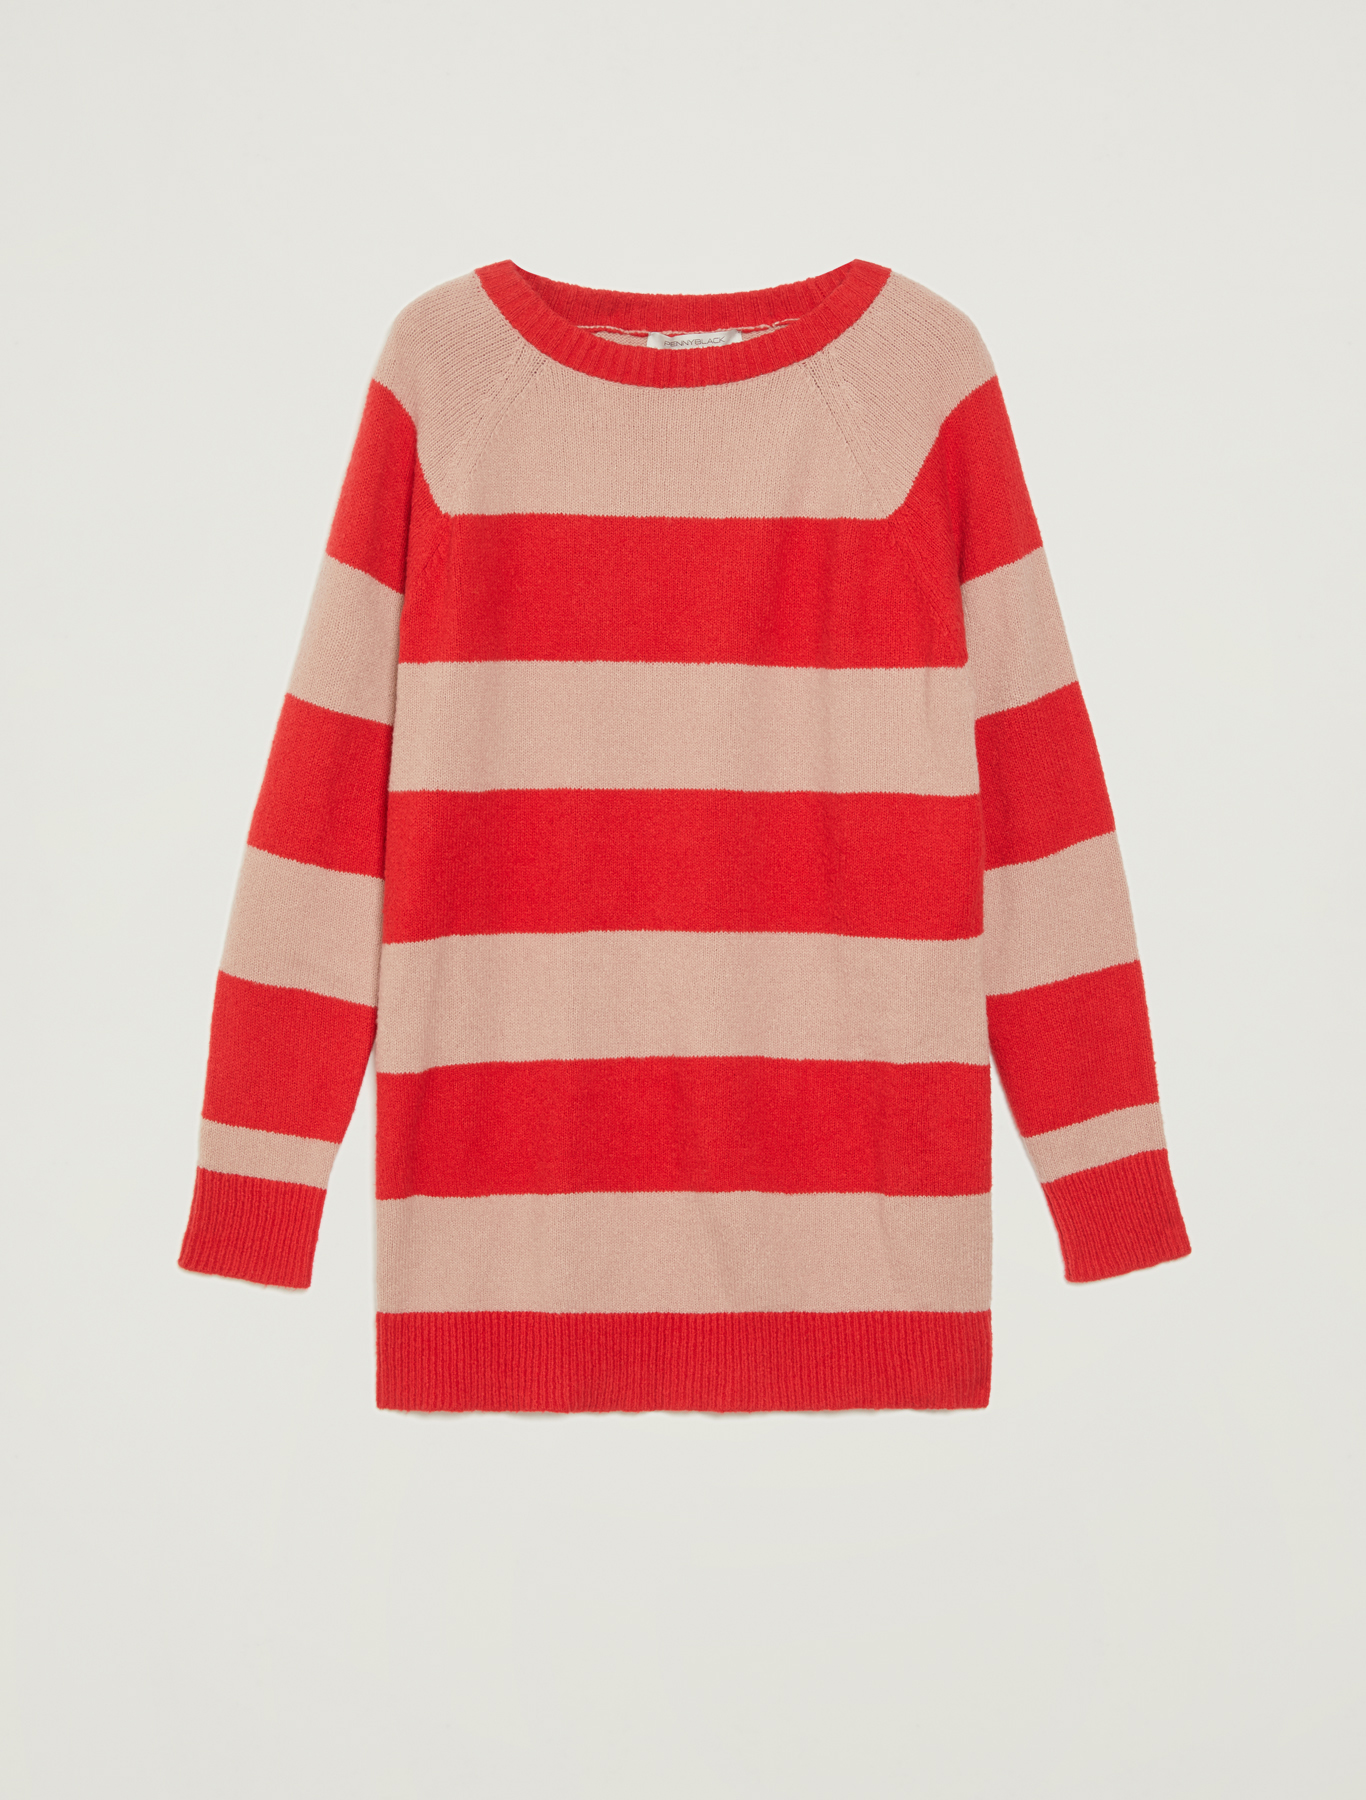 Jumper with maxi stripes and slits - red - pennyblack